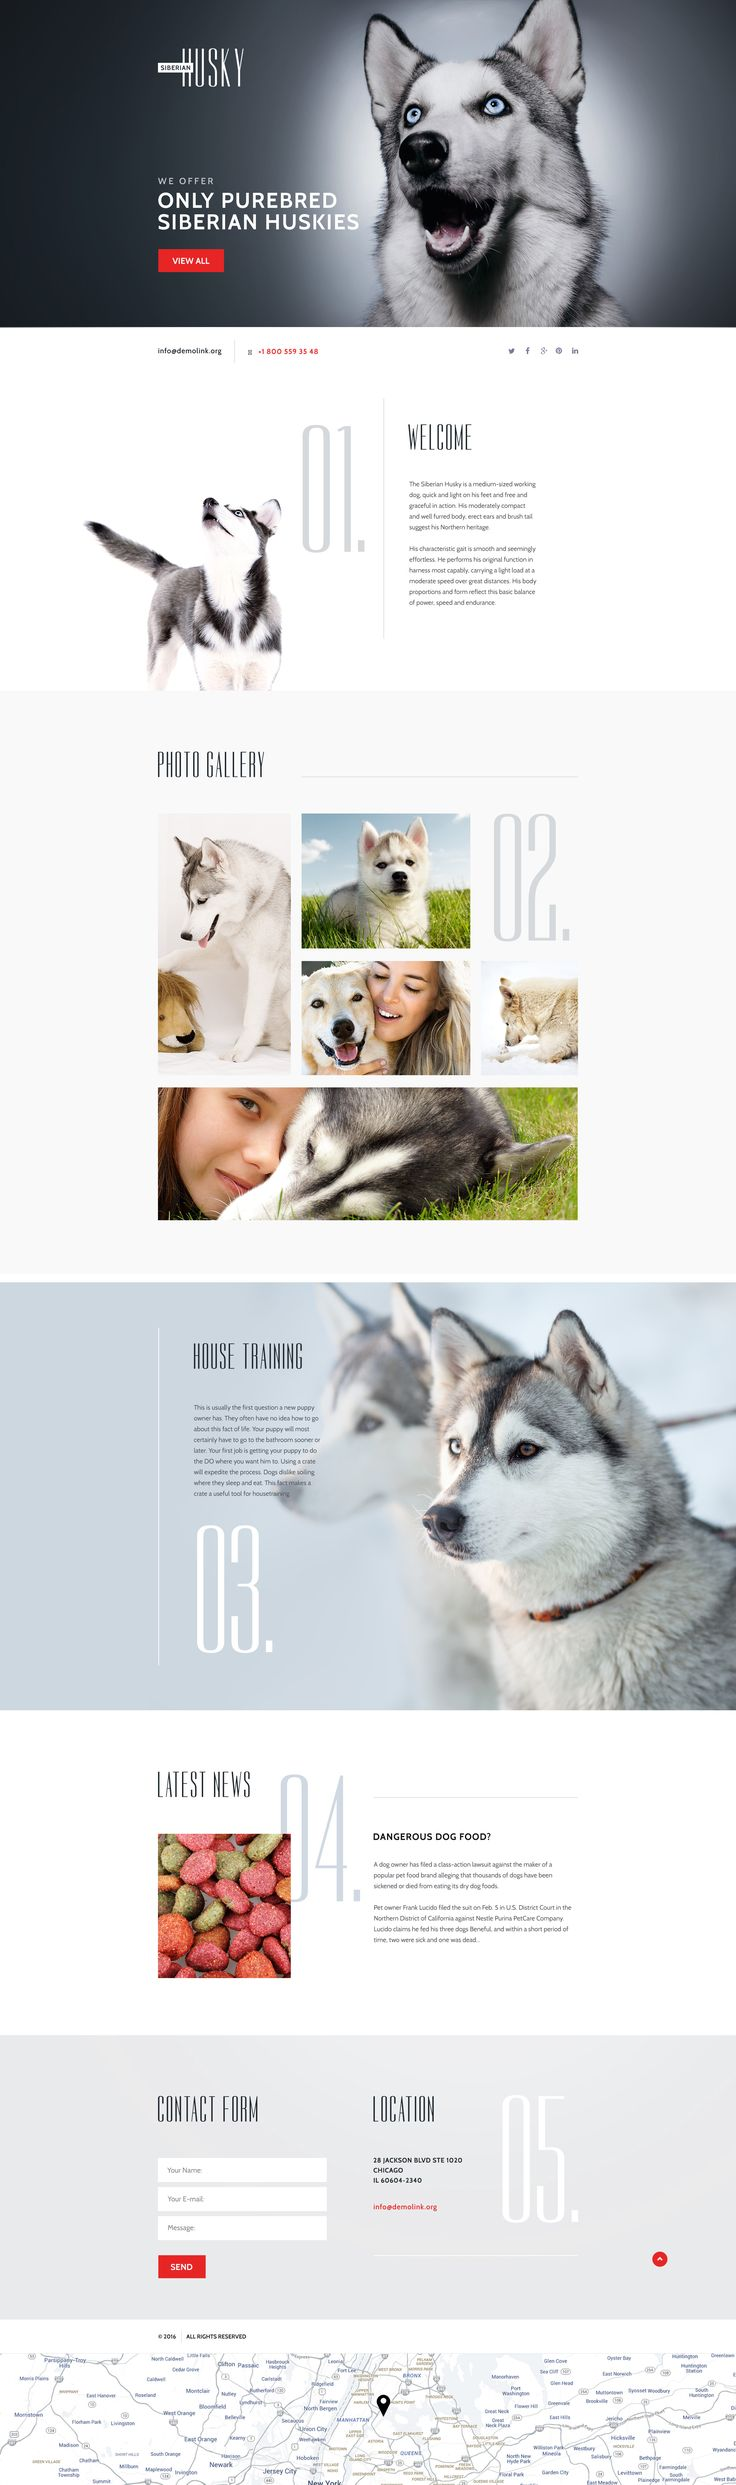 best 우프앤코 images on pinterest kitty cats pets and products